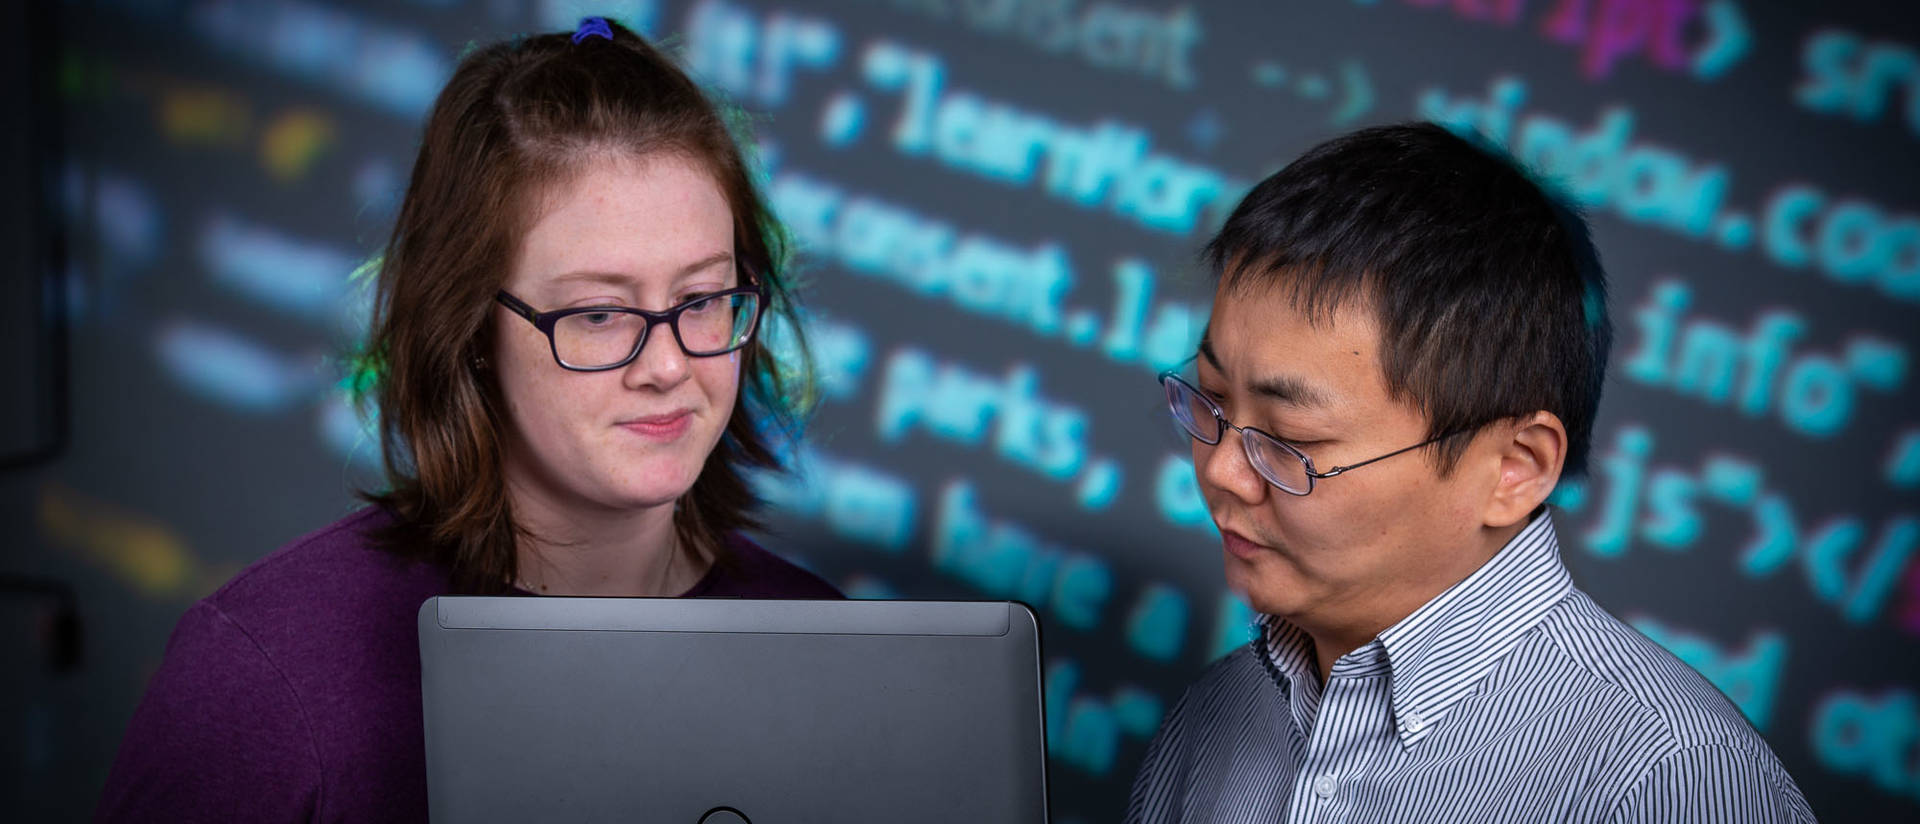 UW-Eau Claire student Emma Fischer and Dr. Ying Ma, associate professor of materials science